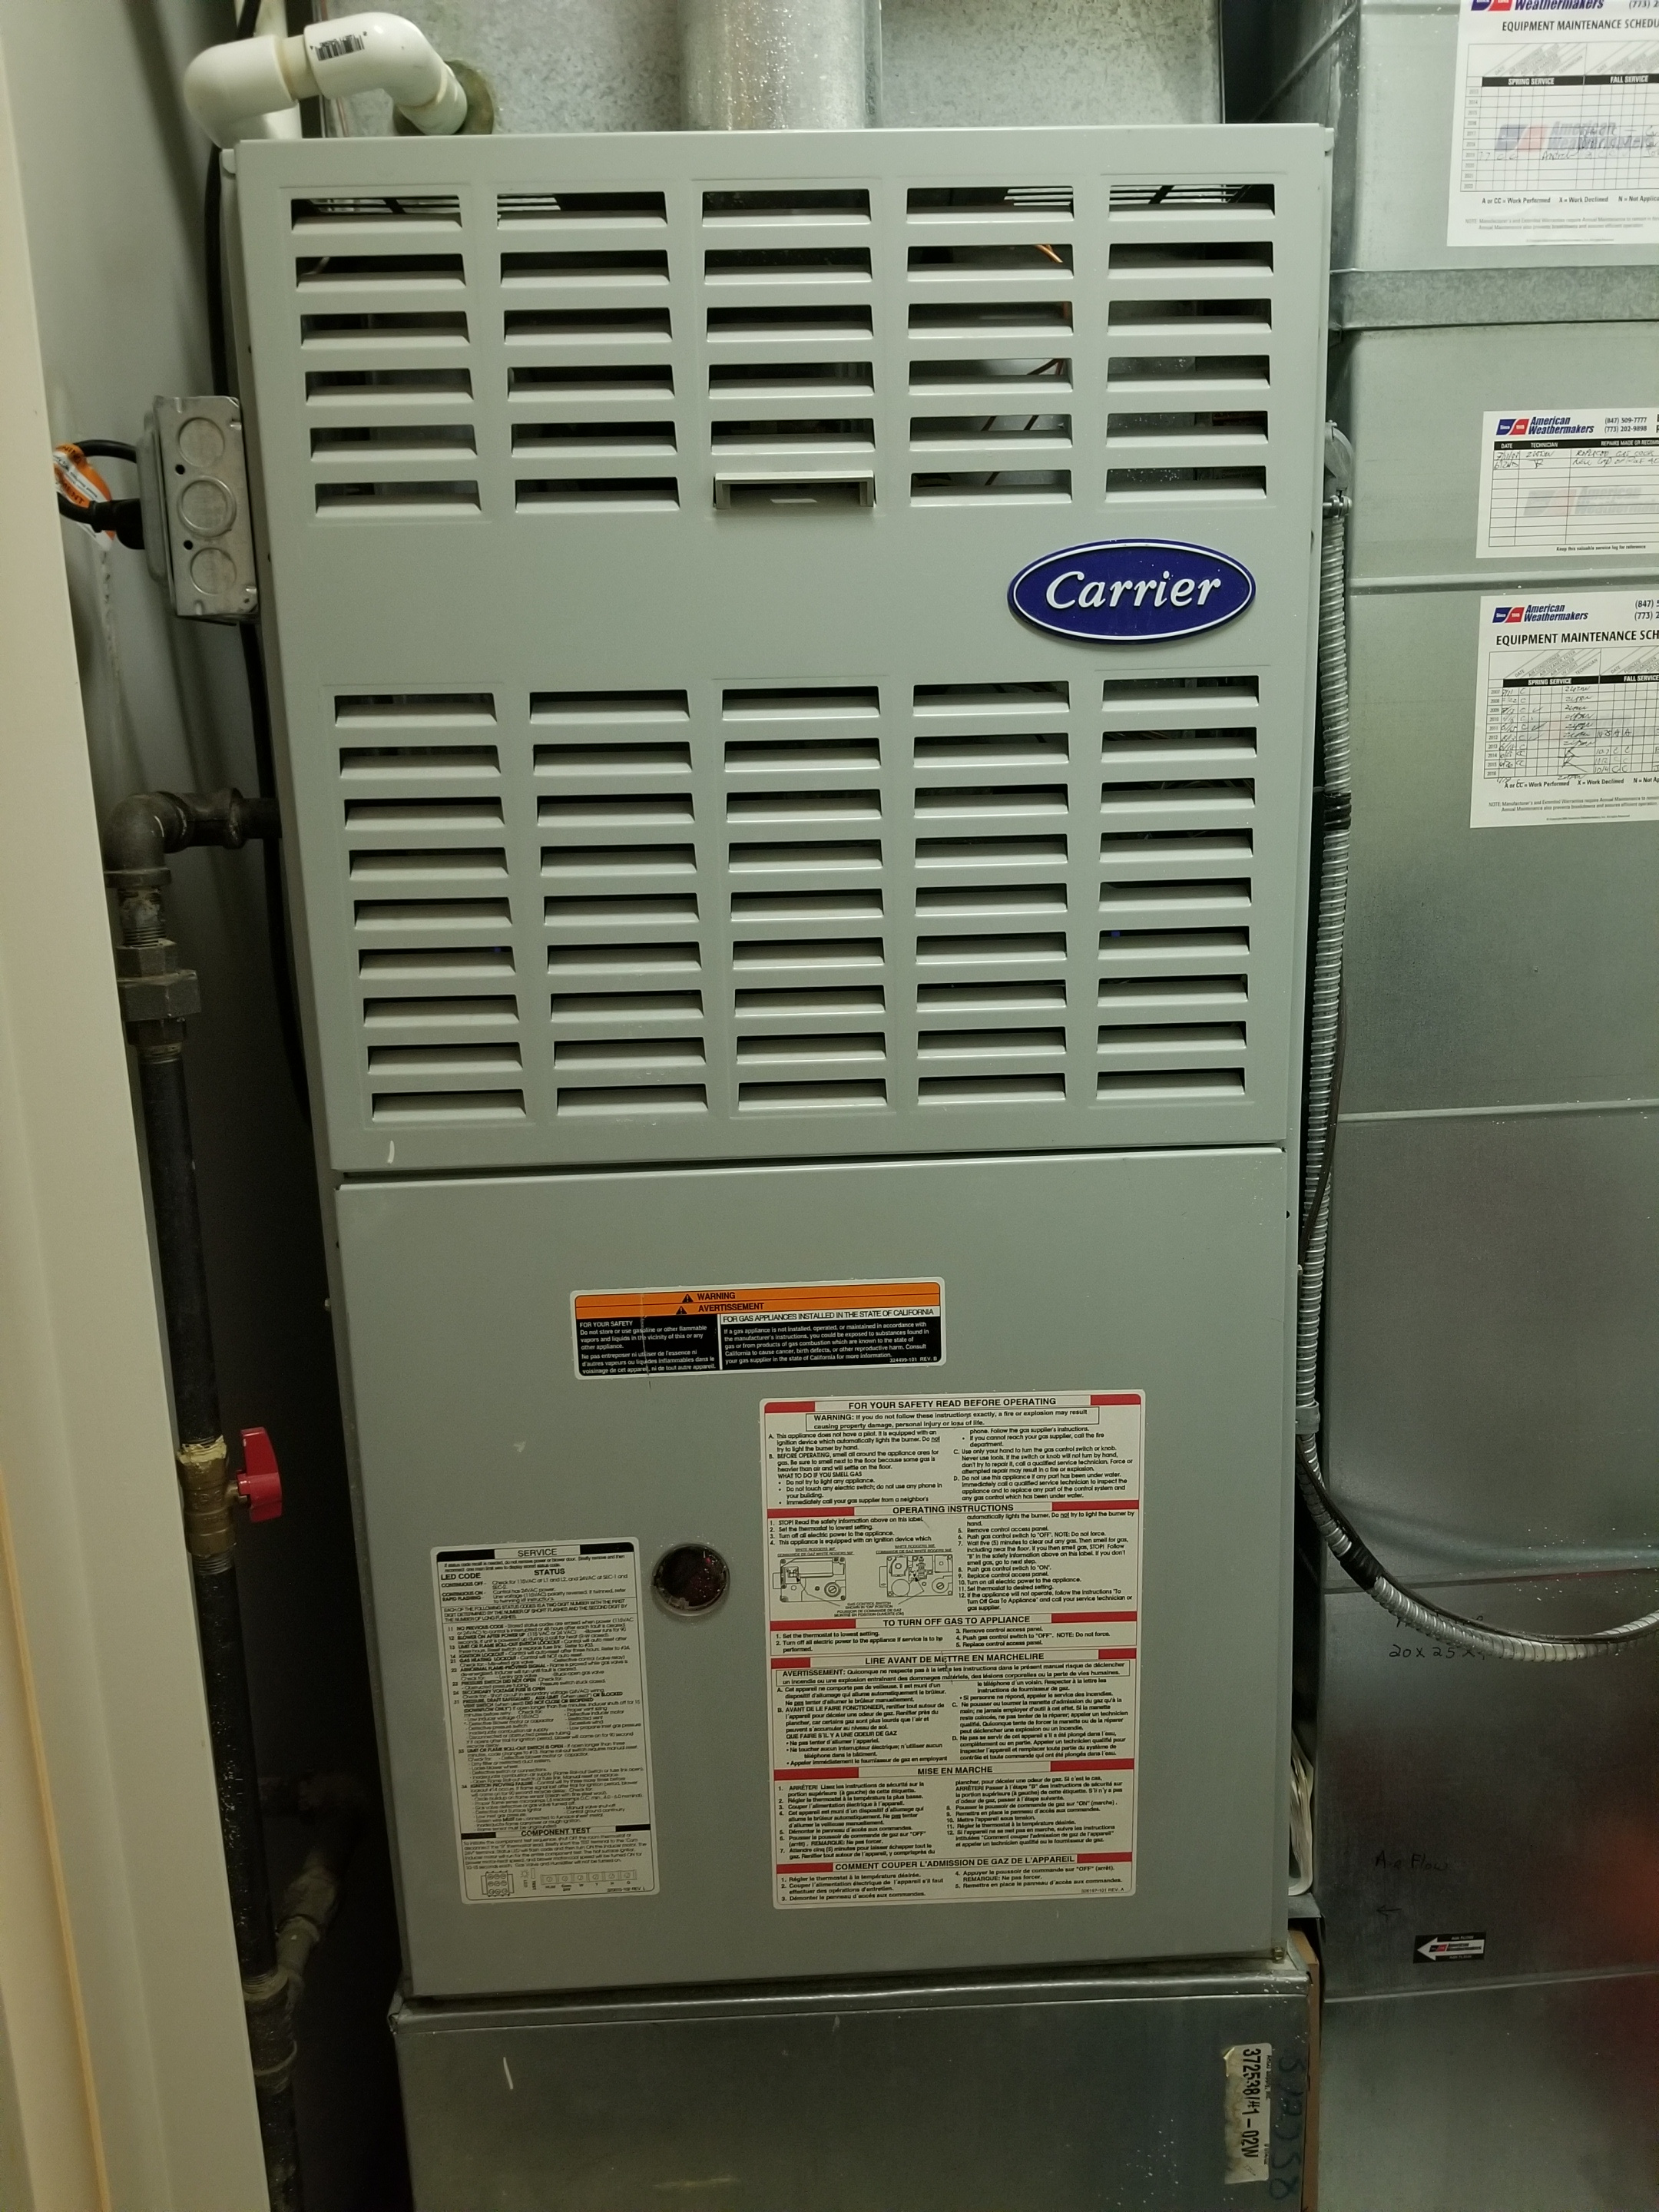 Repaired the Carrier furnace and made adjustments to improve the overall efficiency and life expectancy of the equipment.